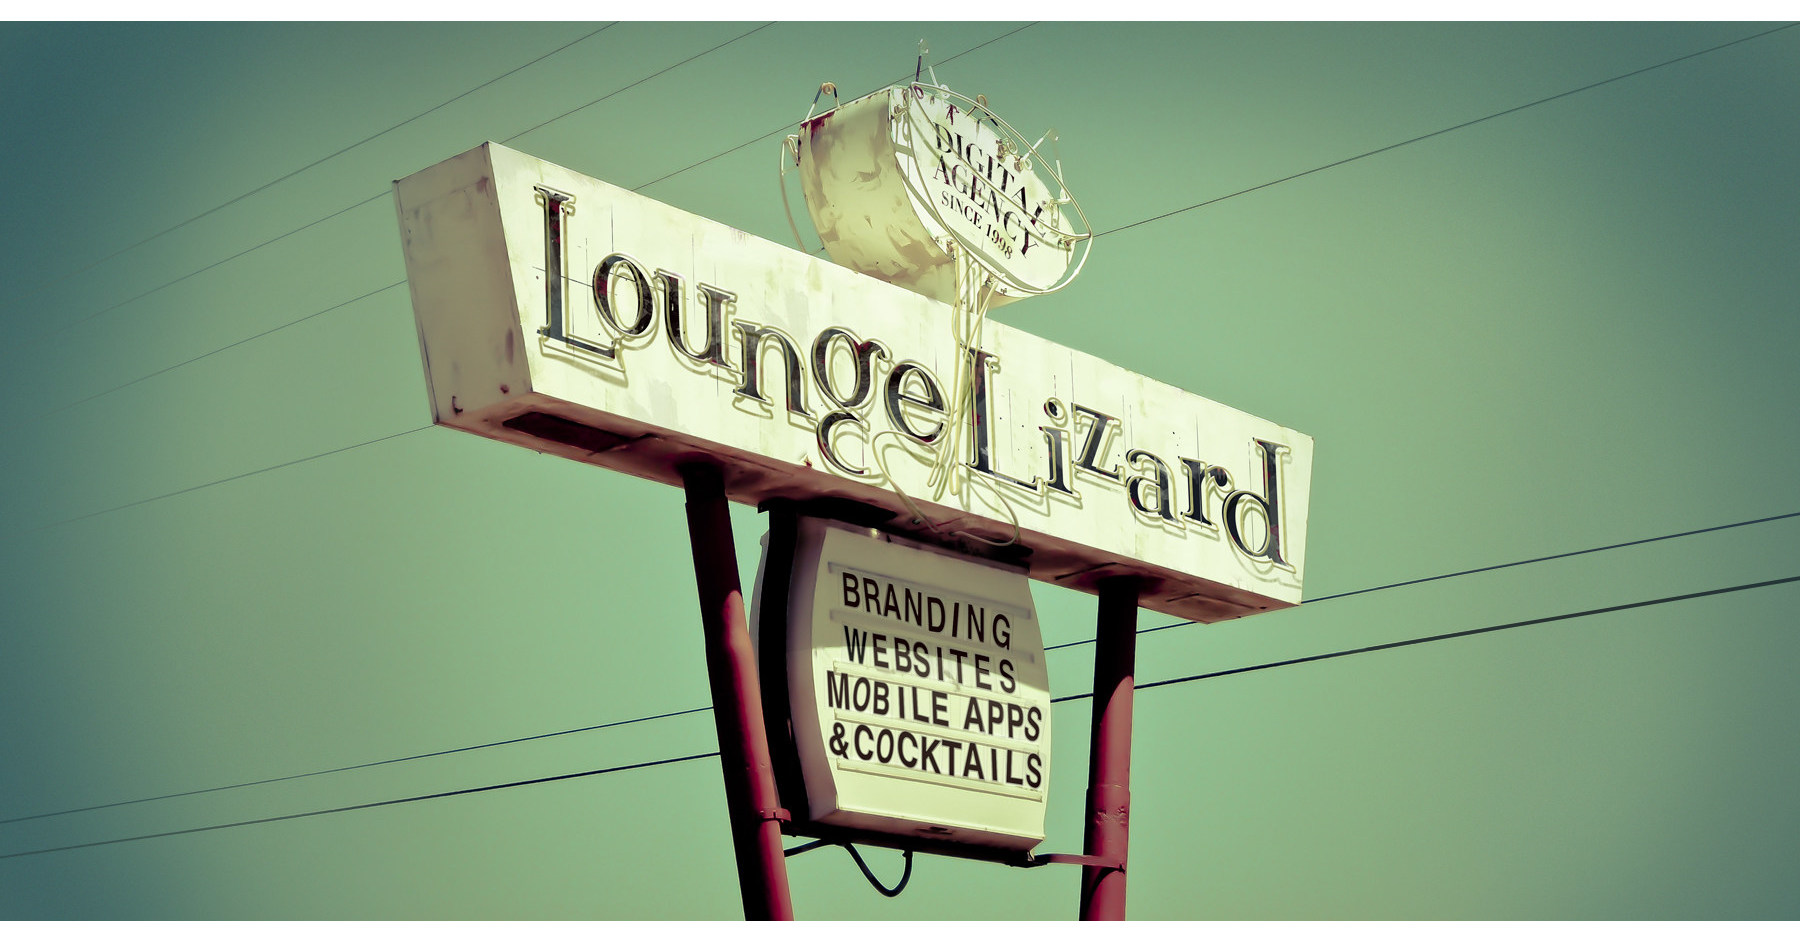 Top Website Design Company, Lounge Lizard, shares the 5 Factors Changing Web UX